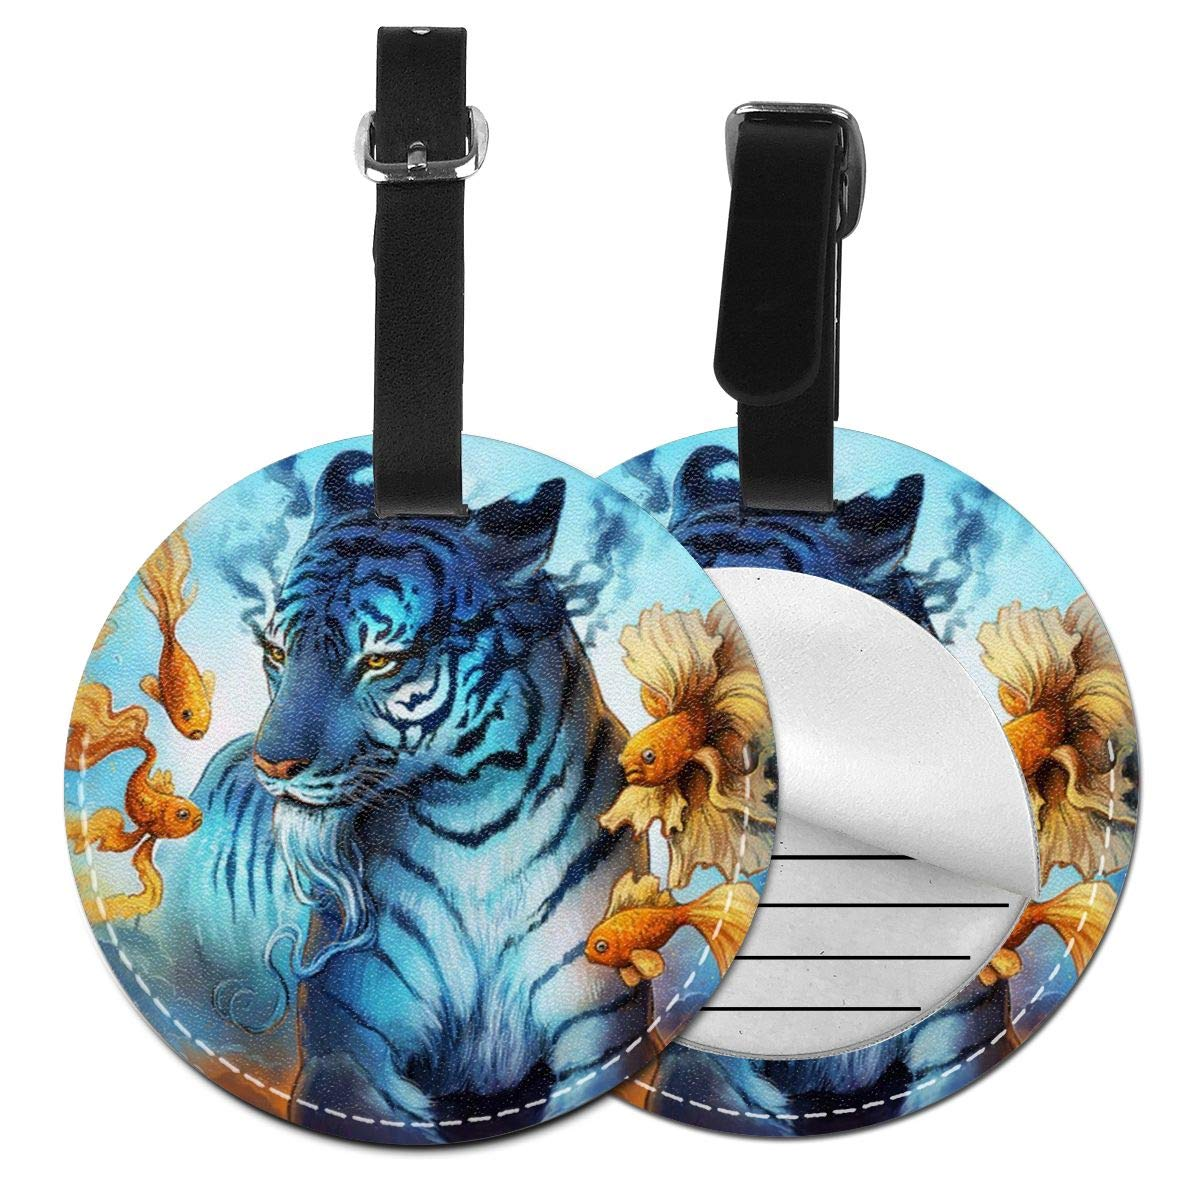 RITGOWWV PU Leather Luggage Tags 3D Print White Water Tiger Suitcase Labels Bag Travel Accessories